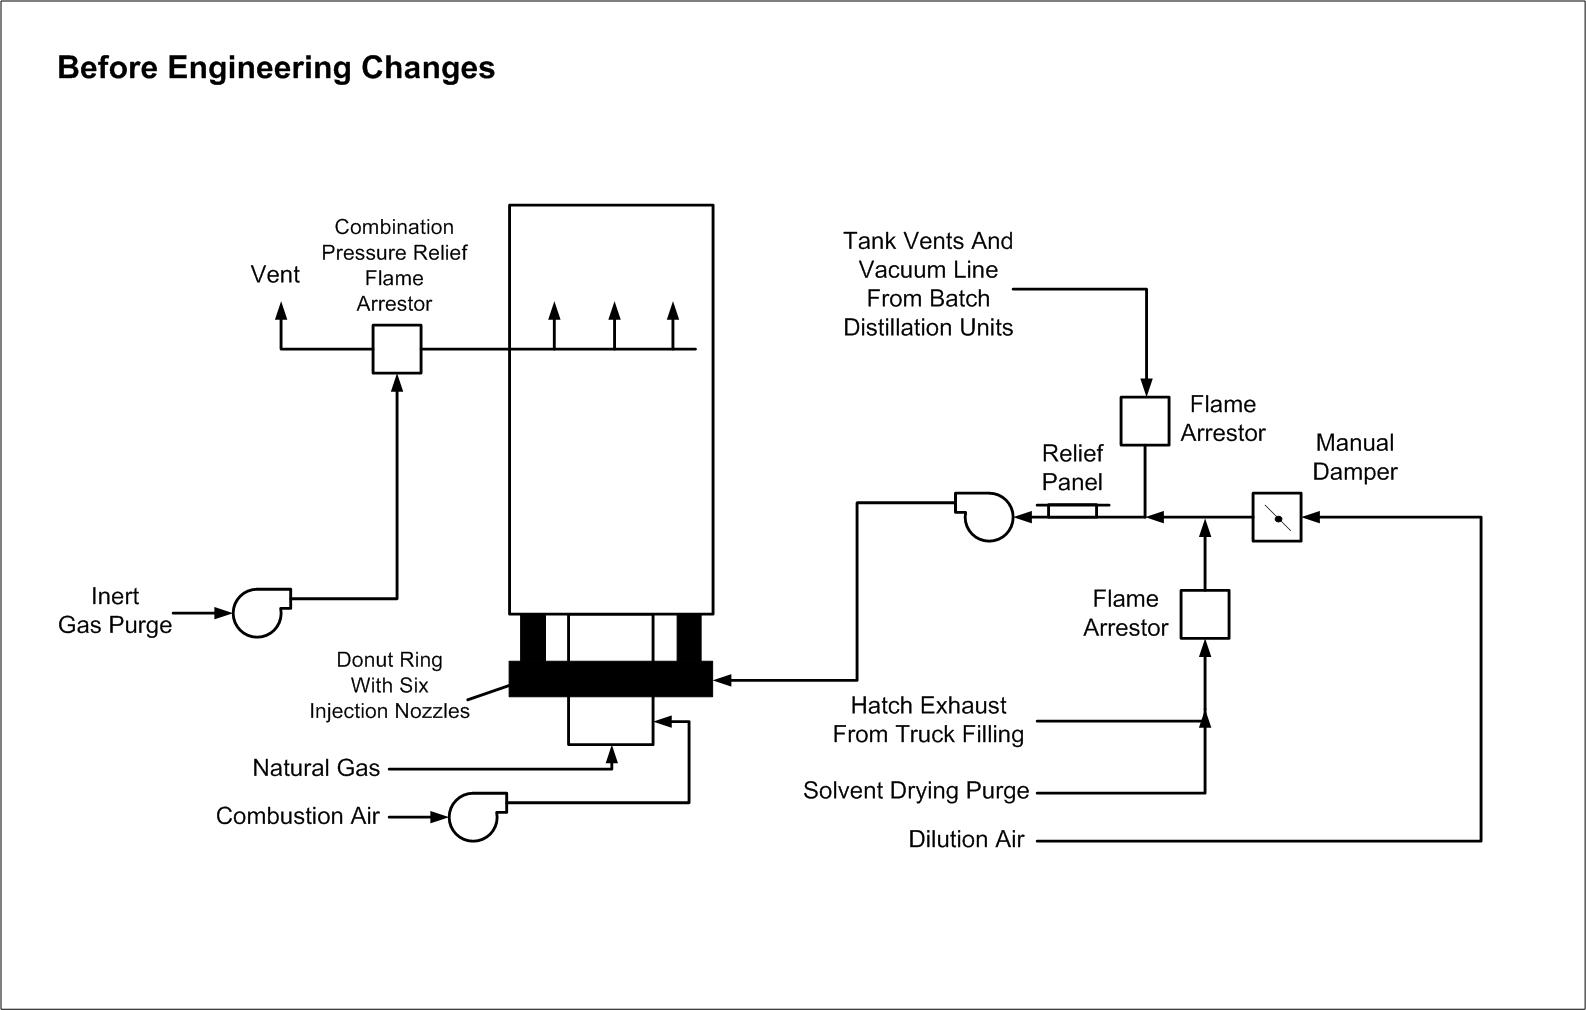 What is an oxidizer and how is it used